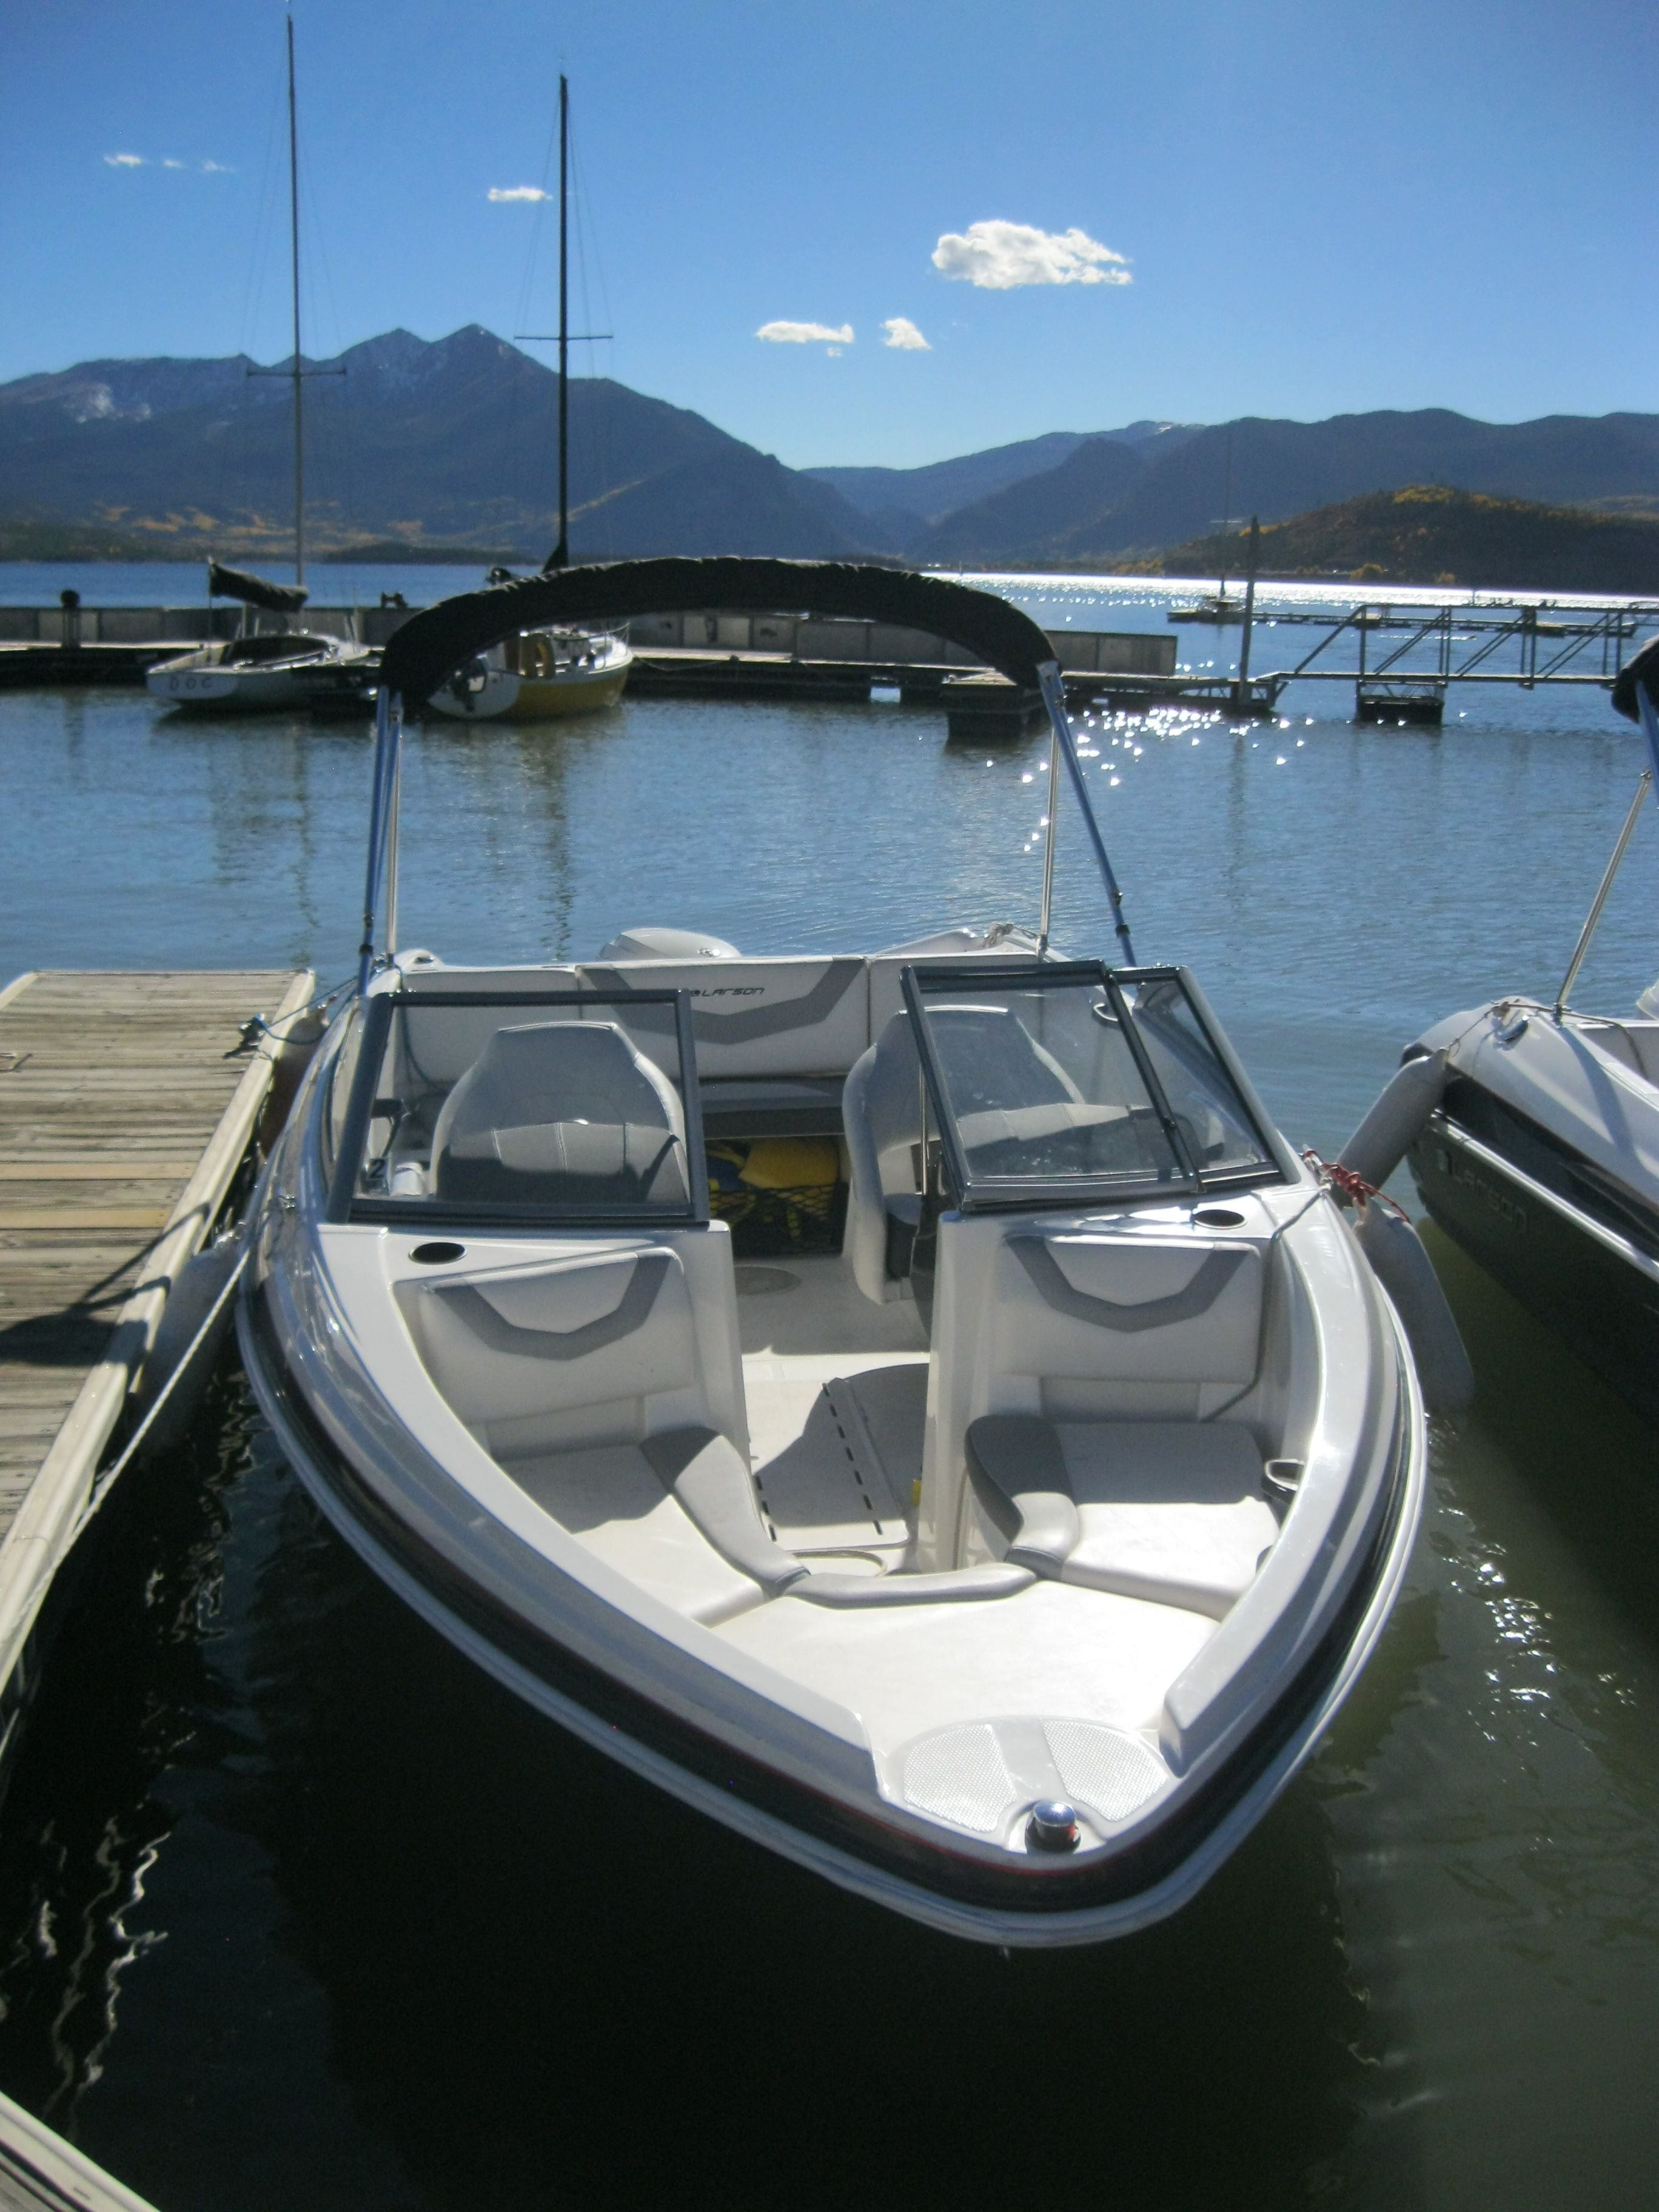 Can you picture yourself here boat rental boat